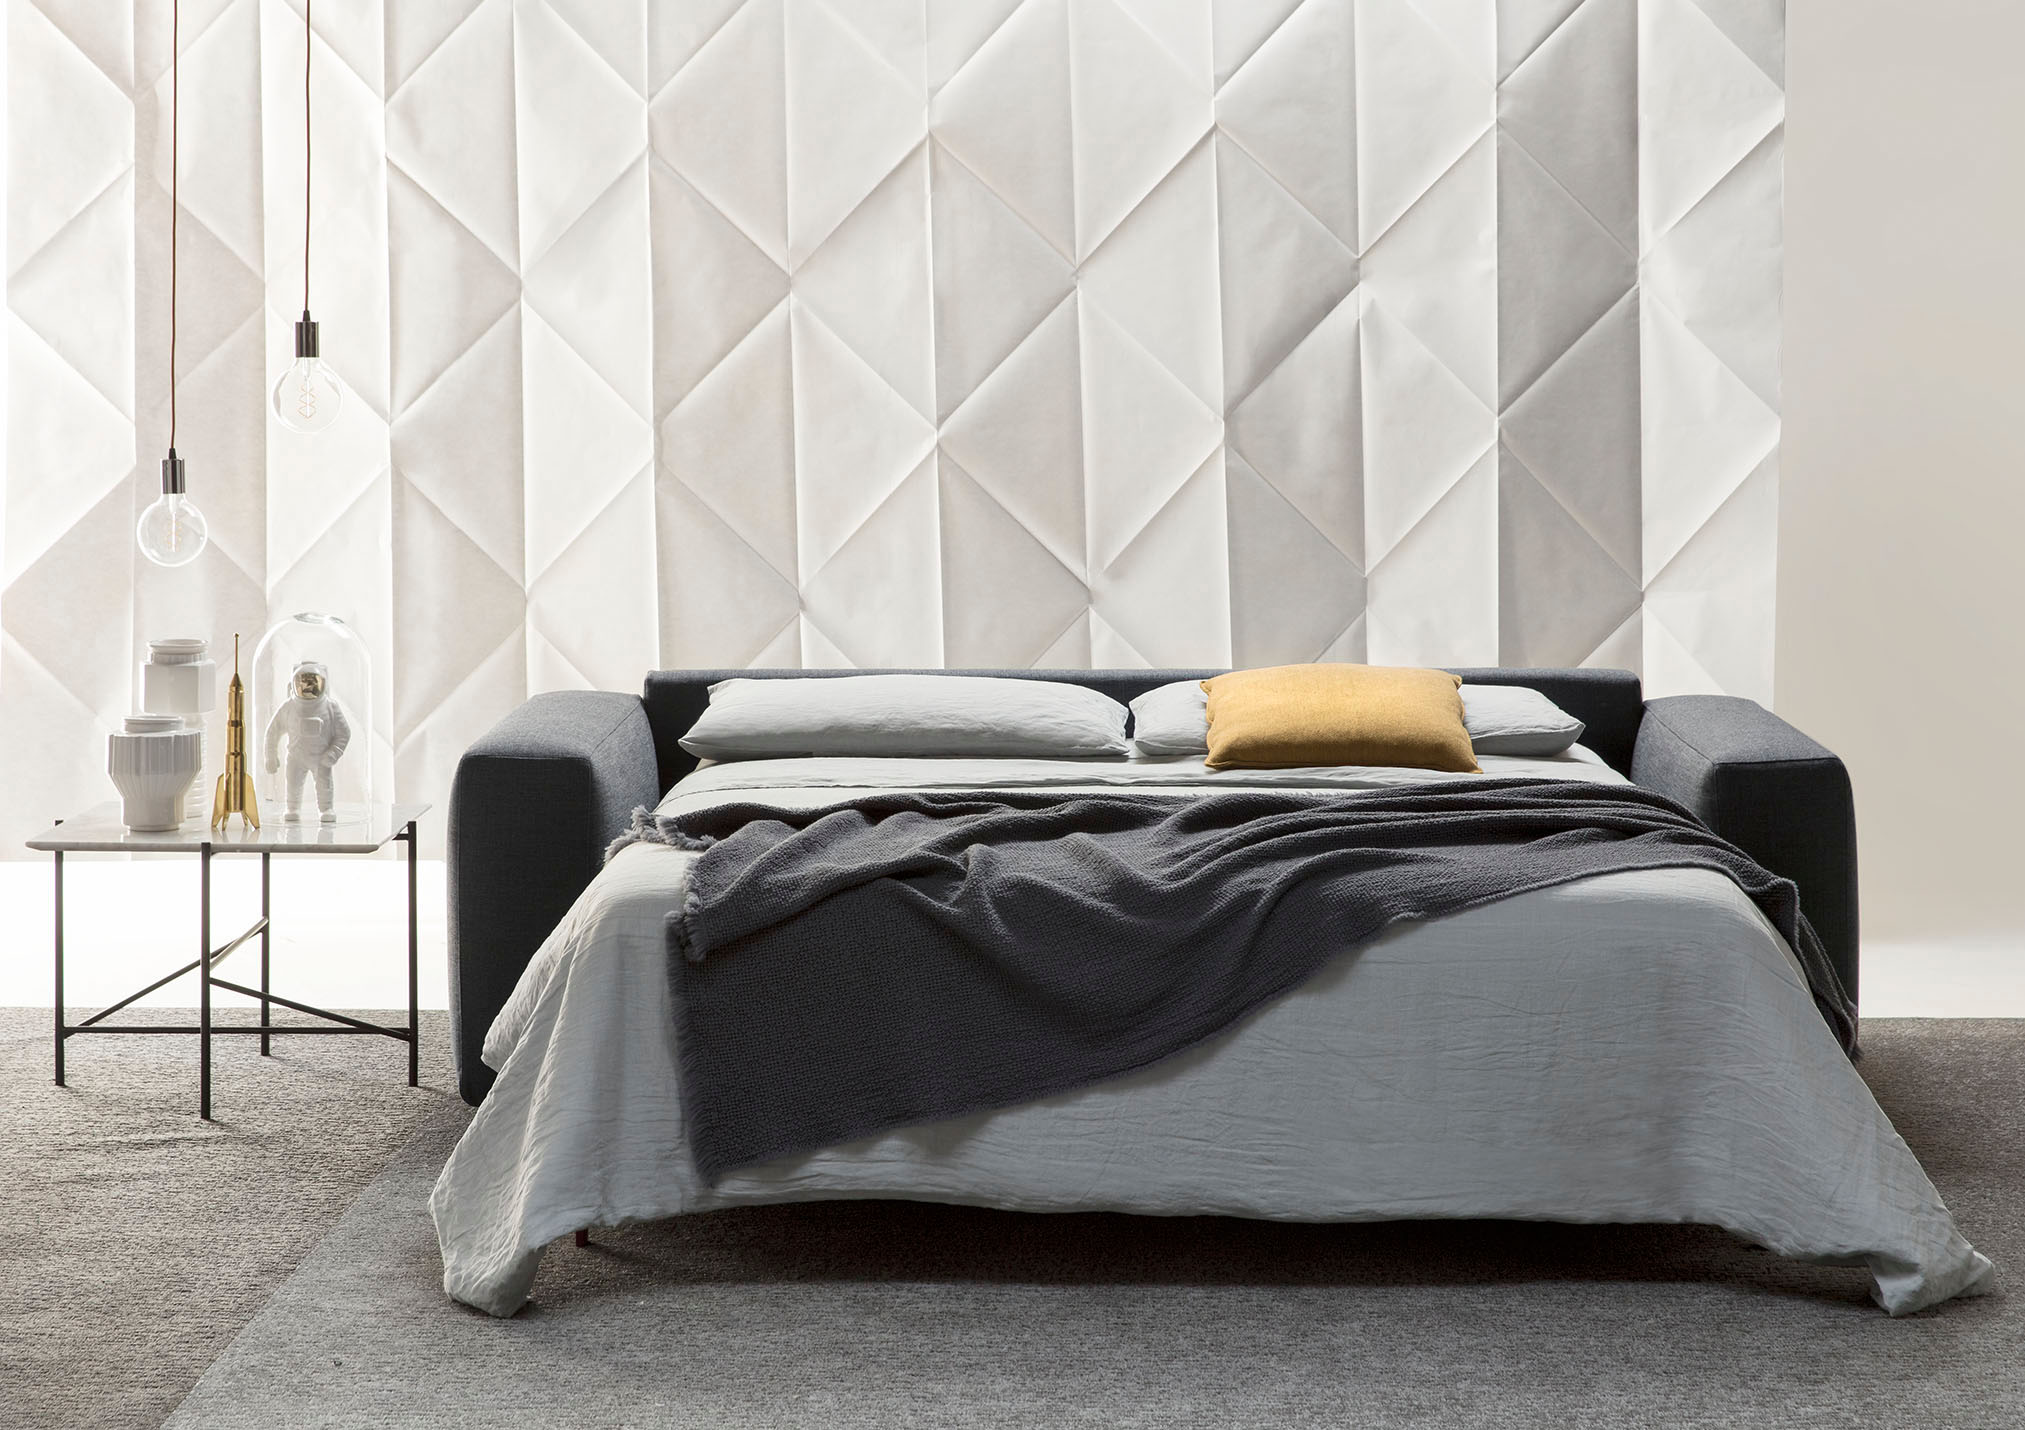 comment choisir le matelas pour votre canap lit berto bertostory berto salotti blog. Black Bedroom Furniture Sets. Home Design Ideas